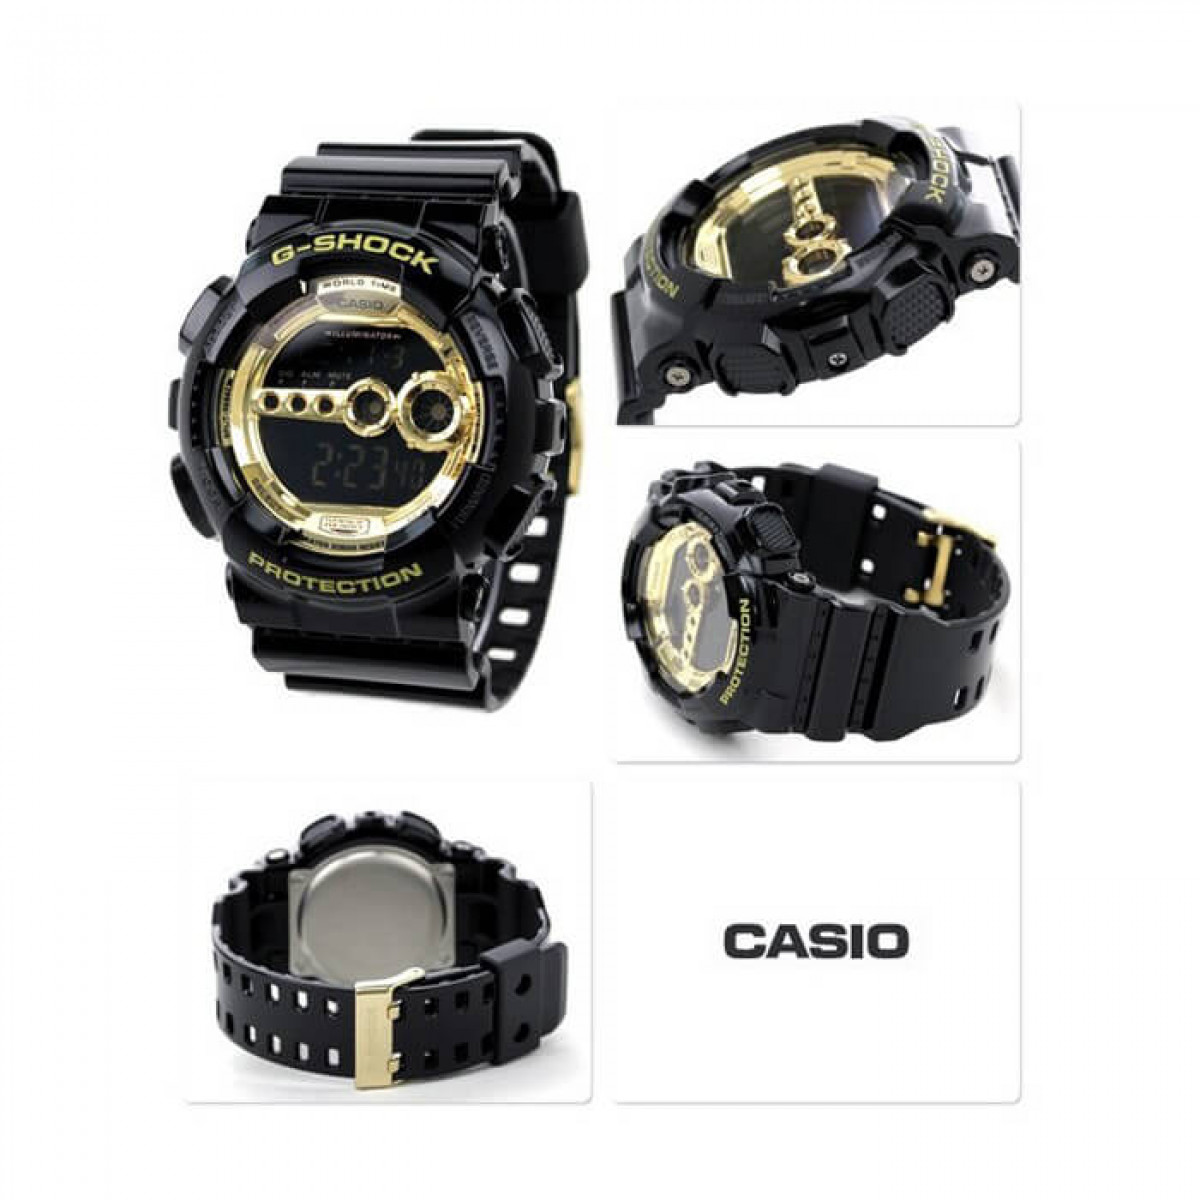 Часовник Casio G-Shock GD-100GB-1ER